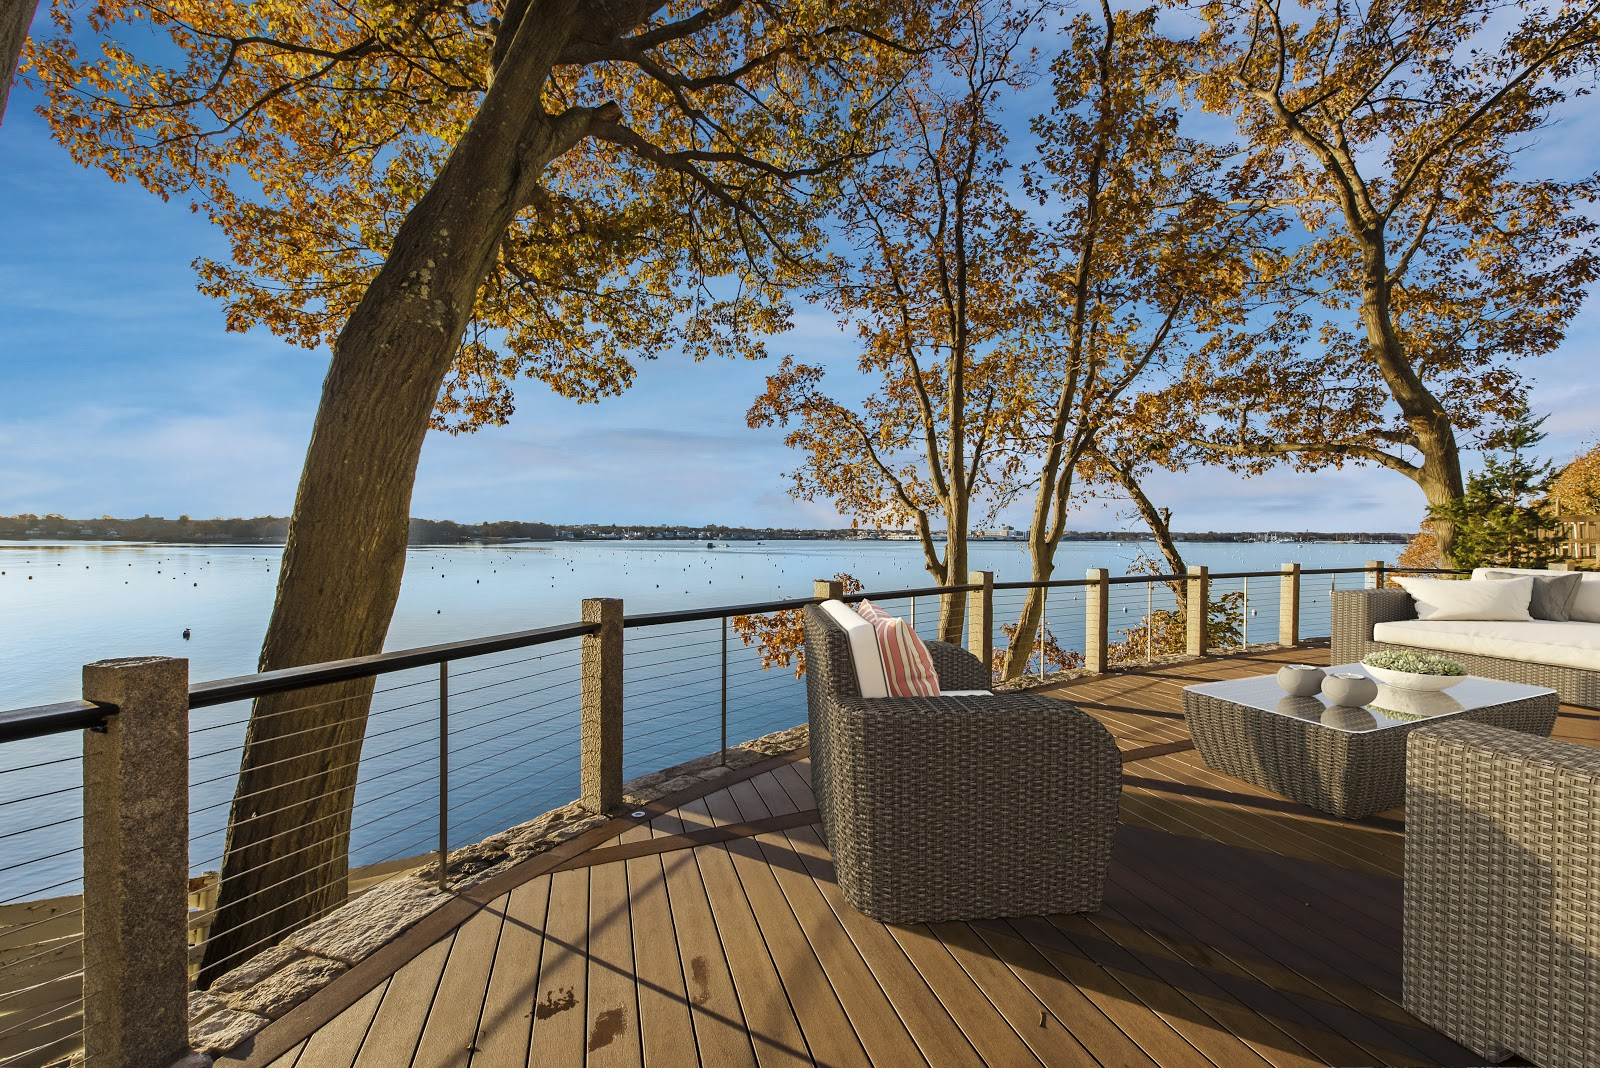 New Home? How to Make Sure Your Deck Reinforcement Is Up-to-date Before a Big Snowstorm